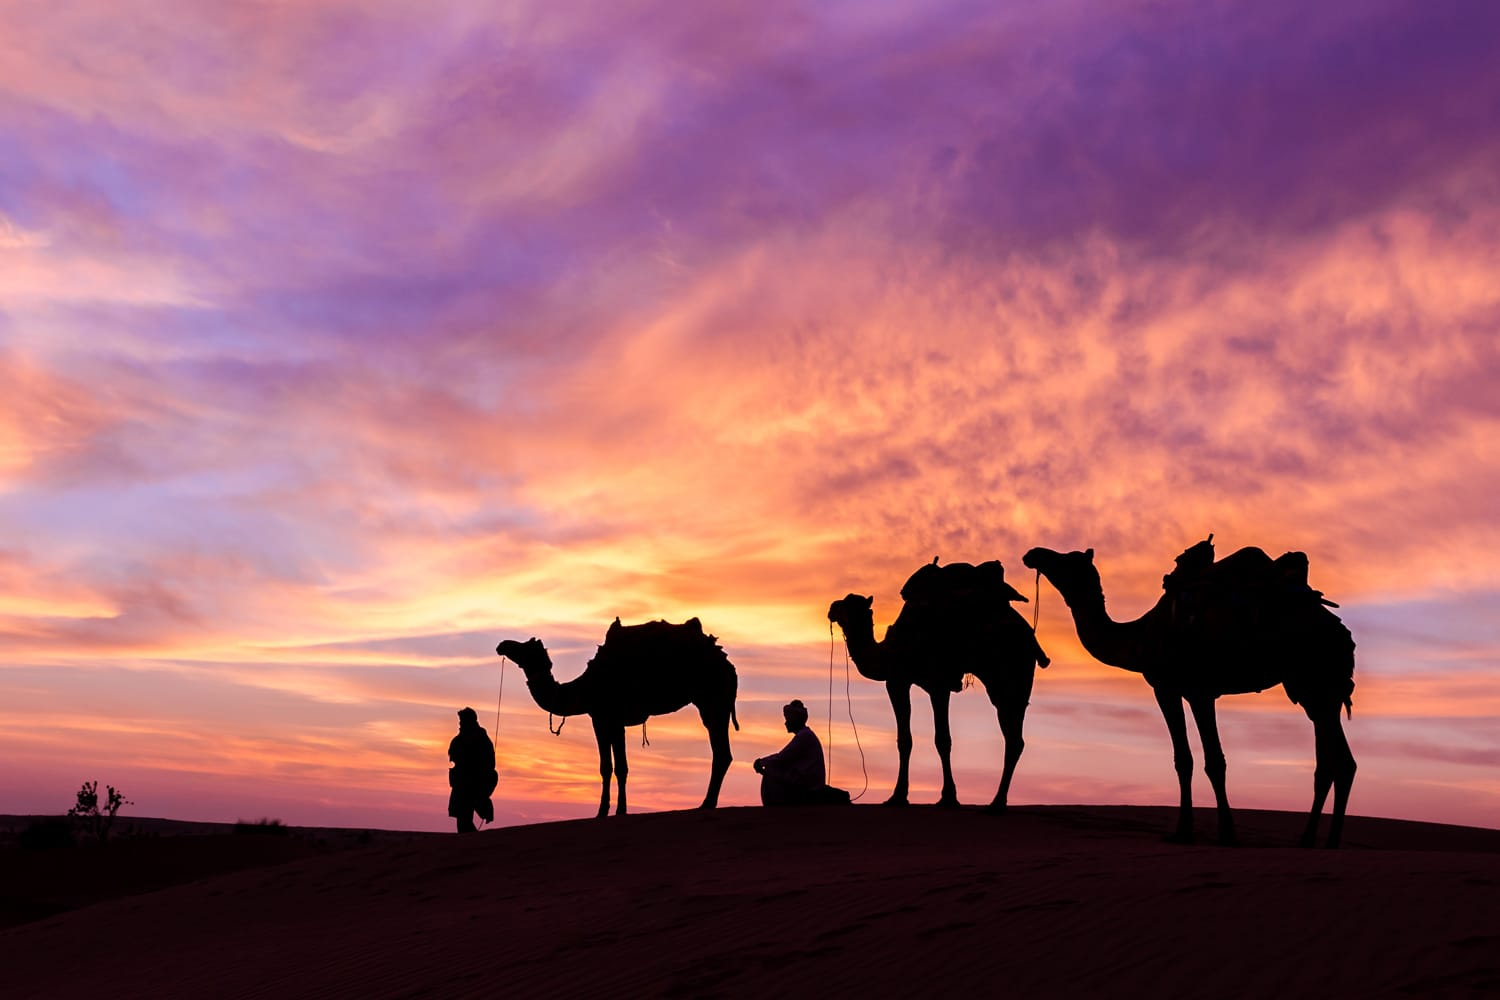 man with camel in desert during sunset